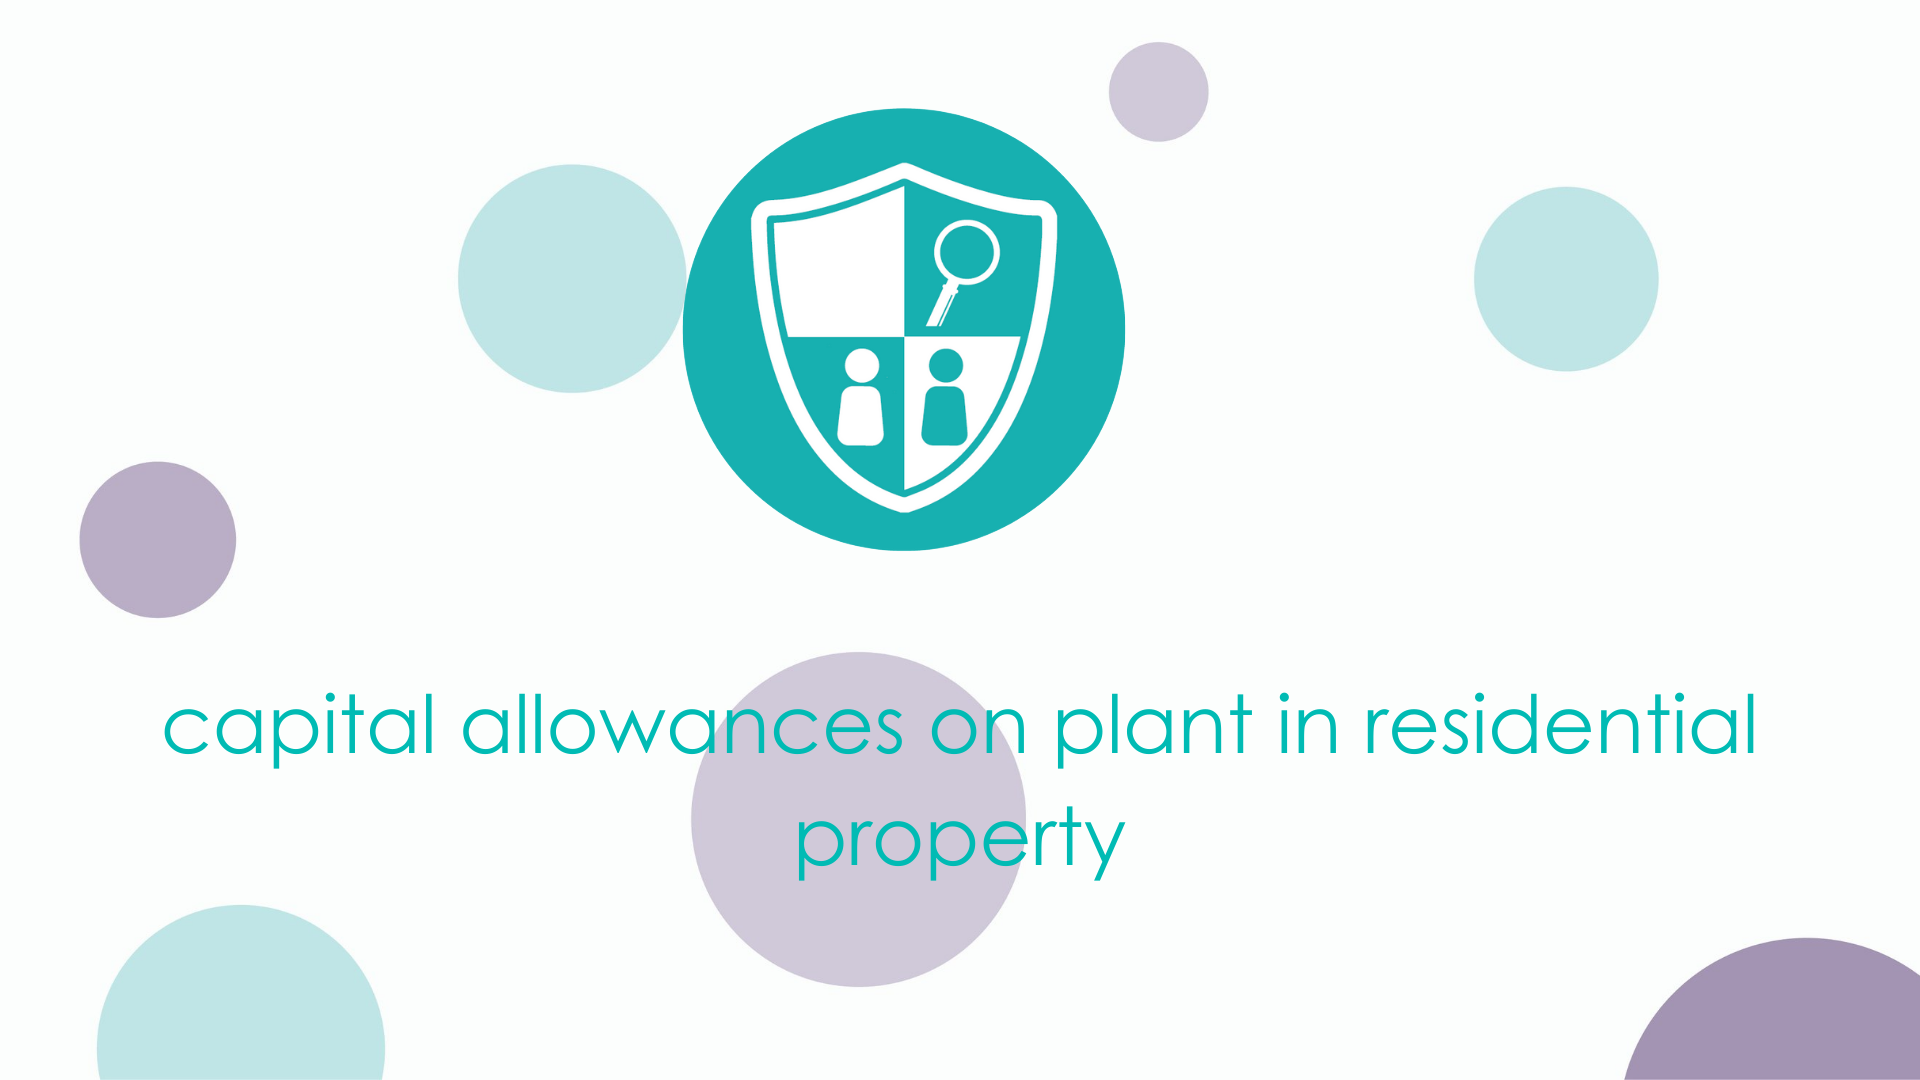 capital allowances on plant in residential property